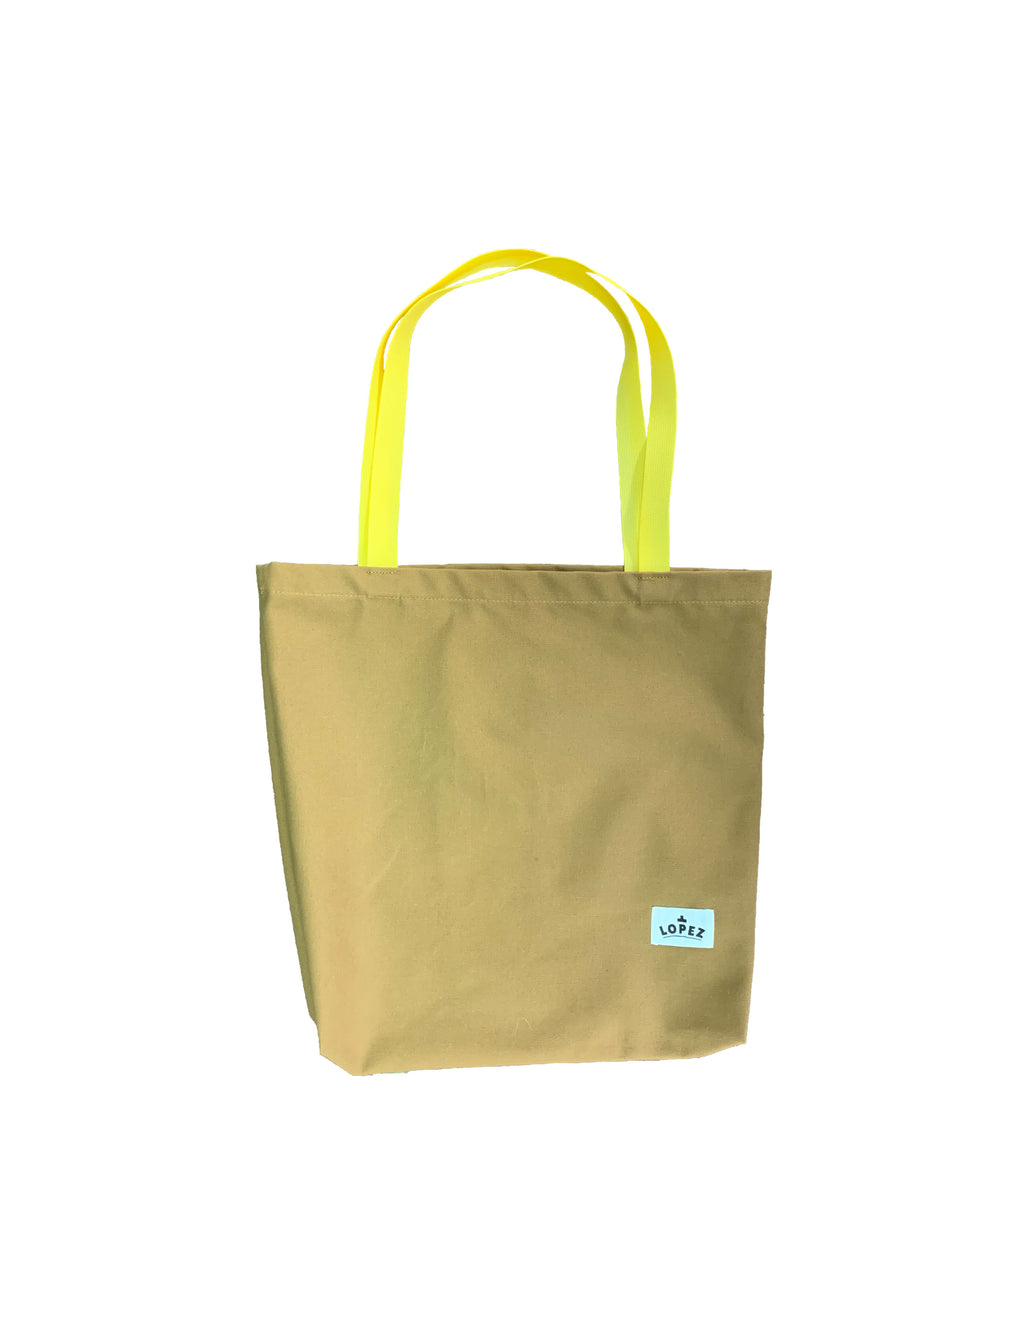 Shop Tote - Tan